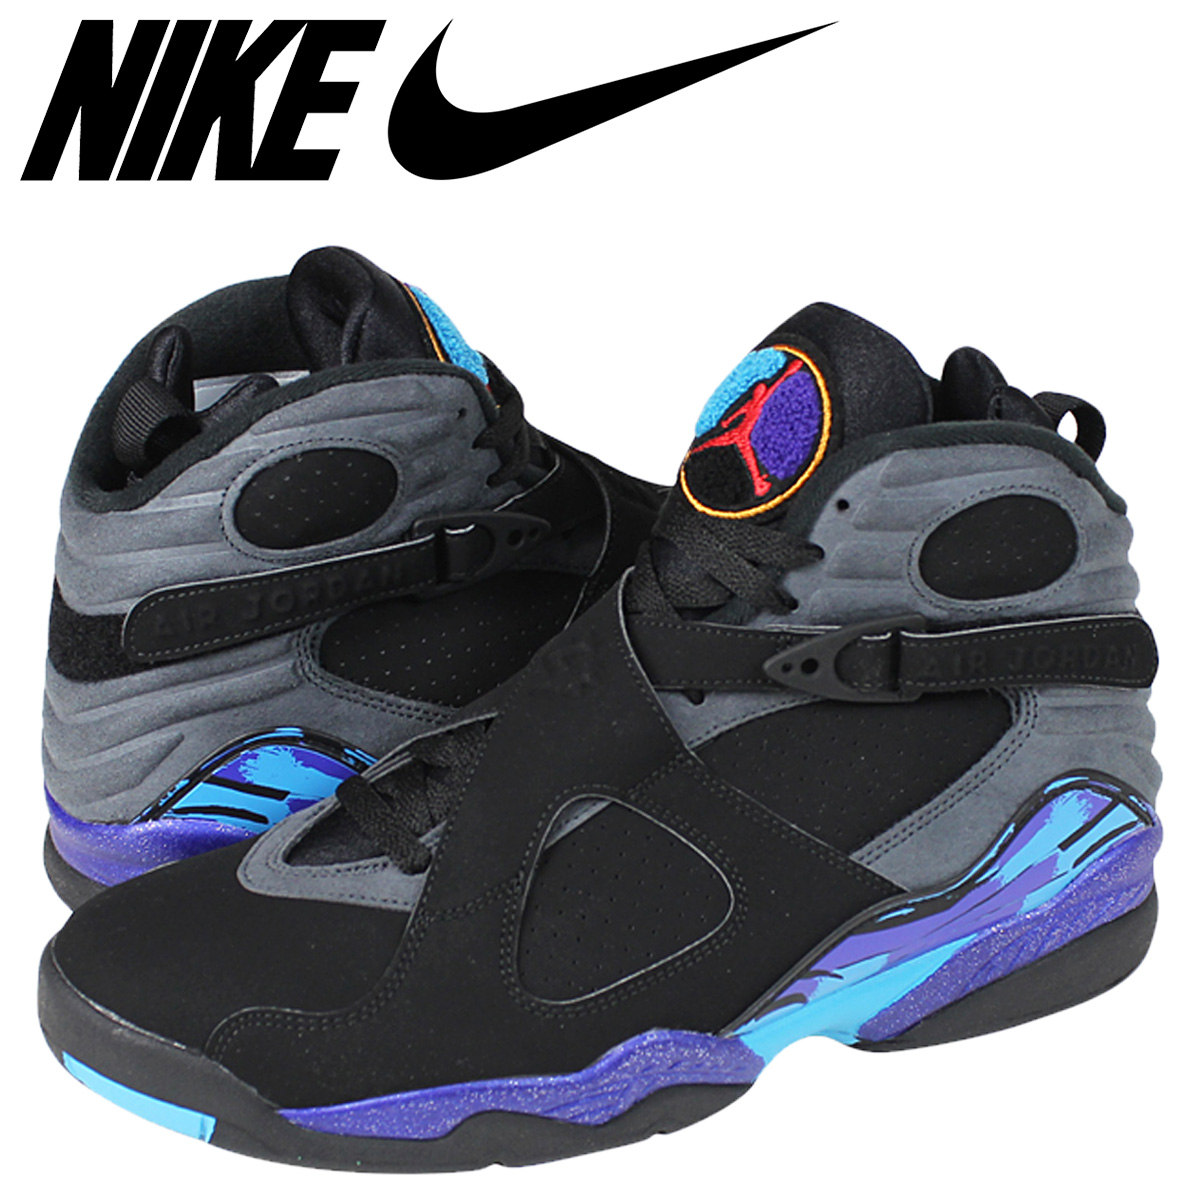 best loved 9a9e3 2cf82 Nike NIKE Air Jordan sneakers AIR JORDAN 8 RETRO AQUA Air Jordan retro 8  Aqua 305381 ...